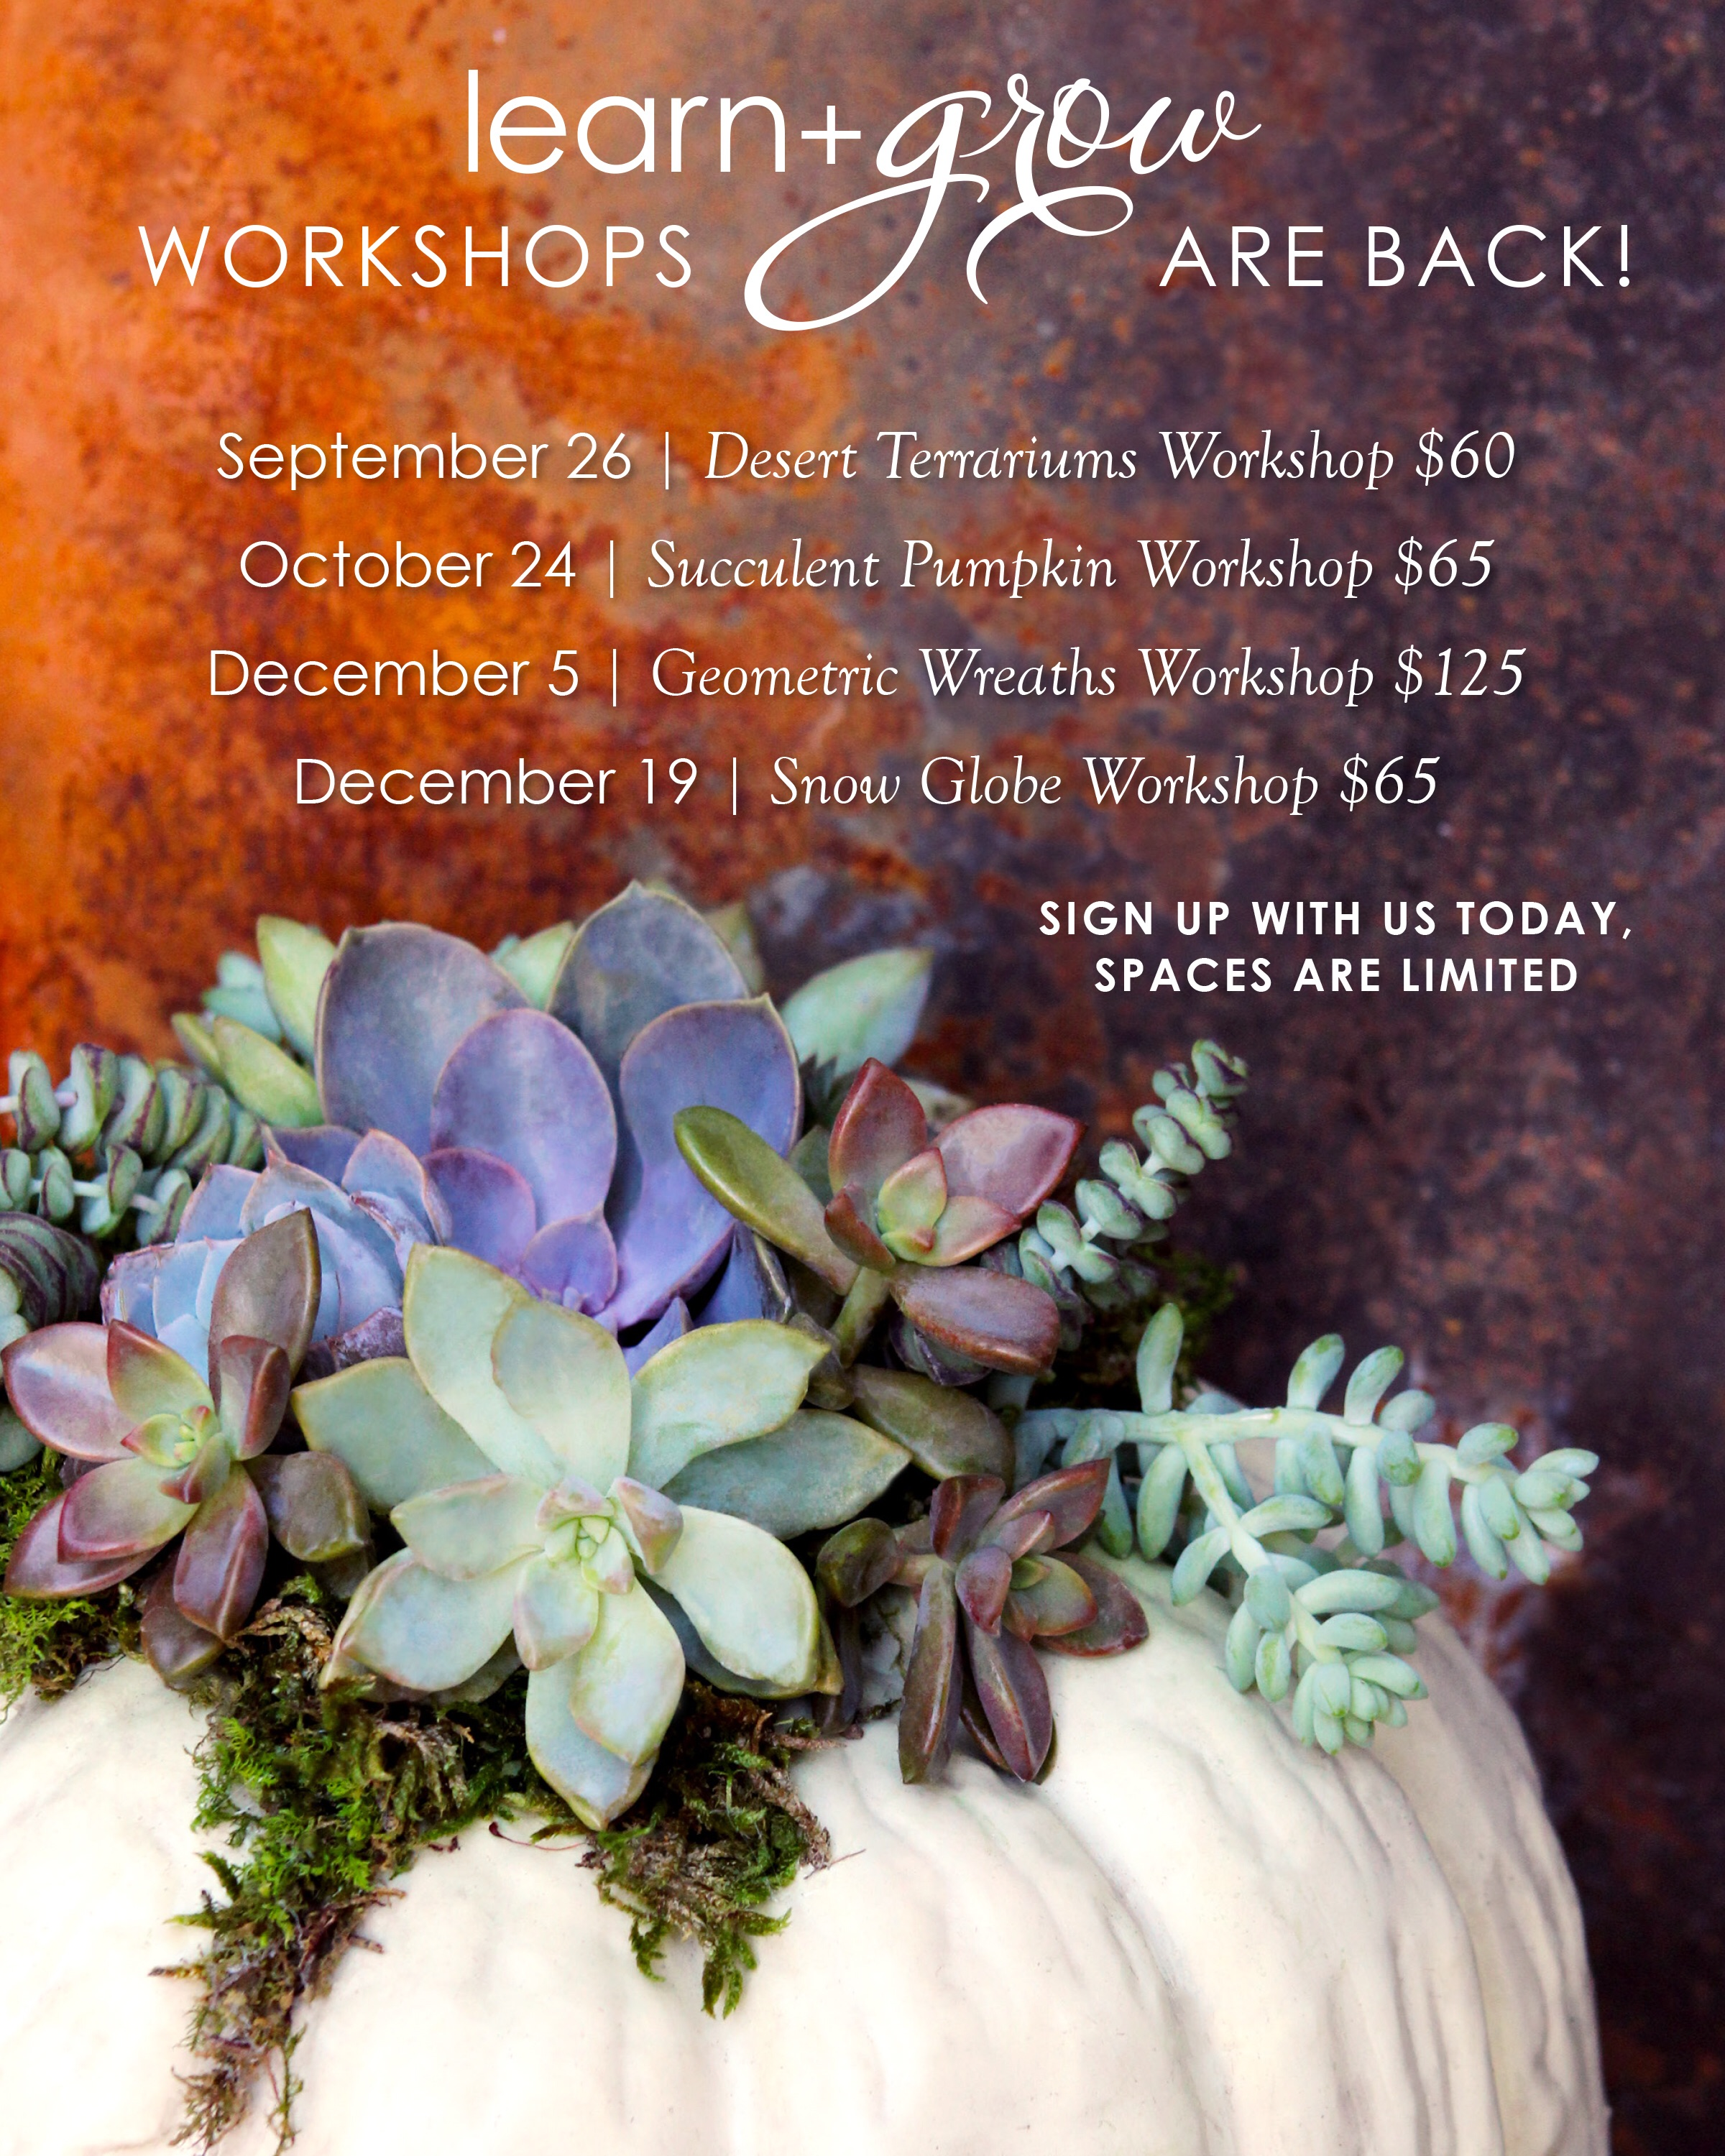 Our Learn + Grow Workshops have returned! | Our Aesthetic blog